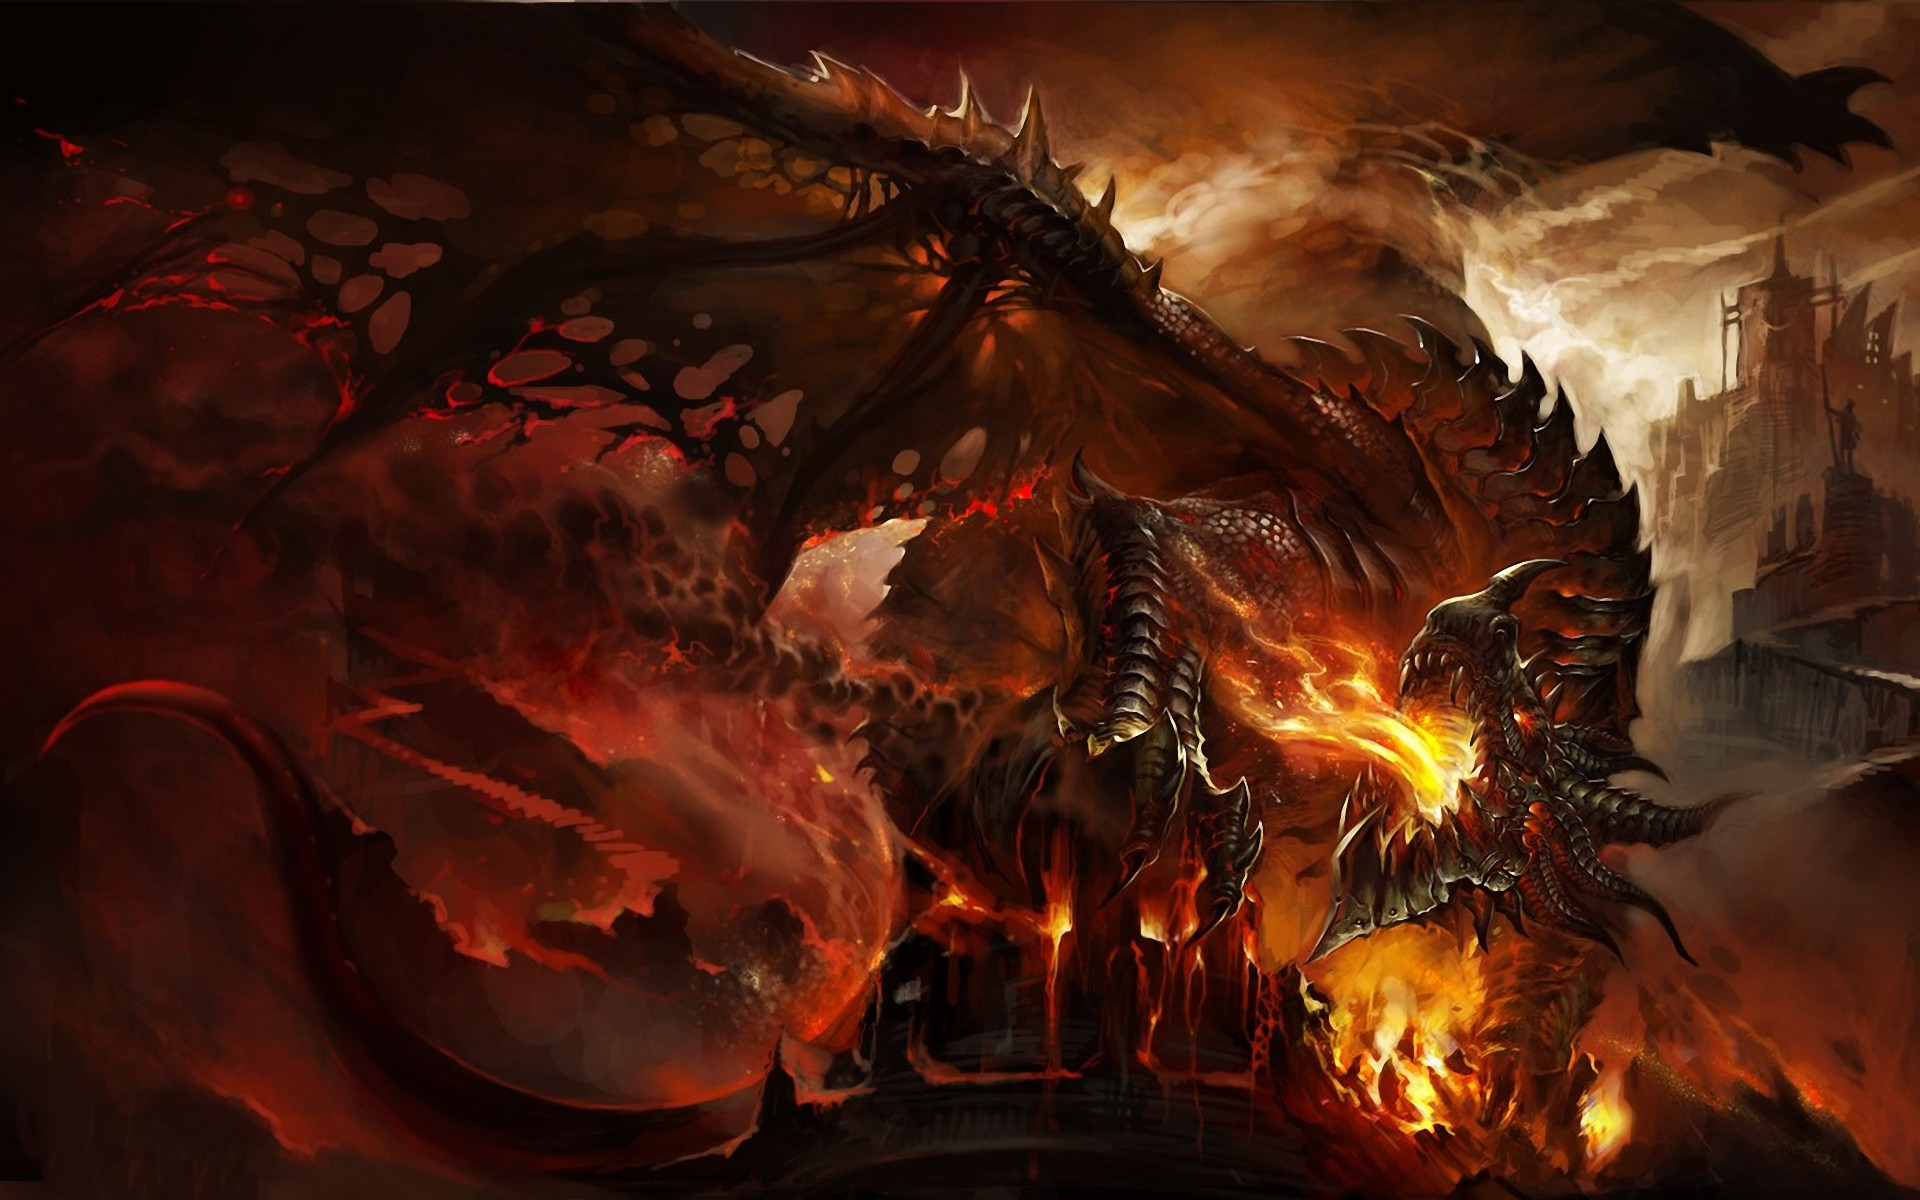 Free Download Deathwing Cataclysm Wallpapers Hd 1920x1200 For